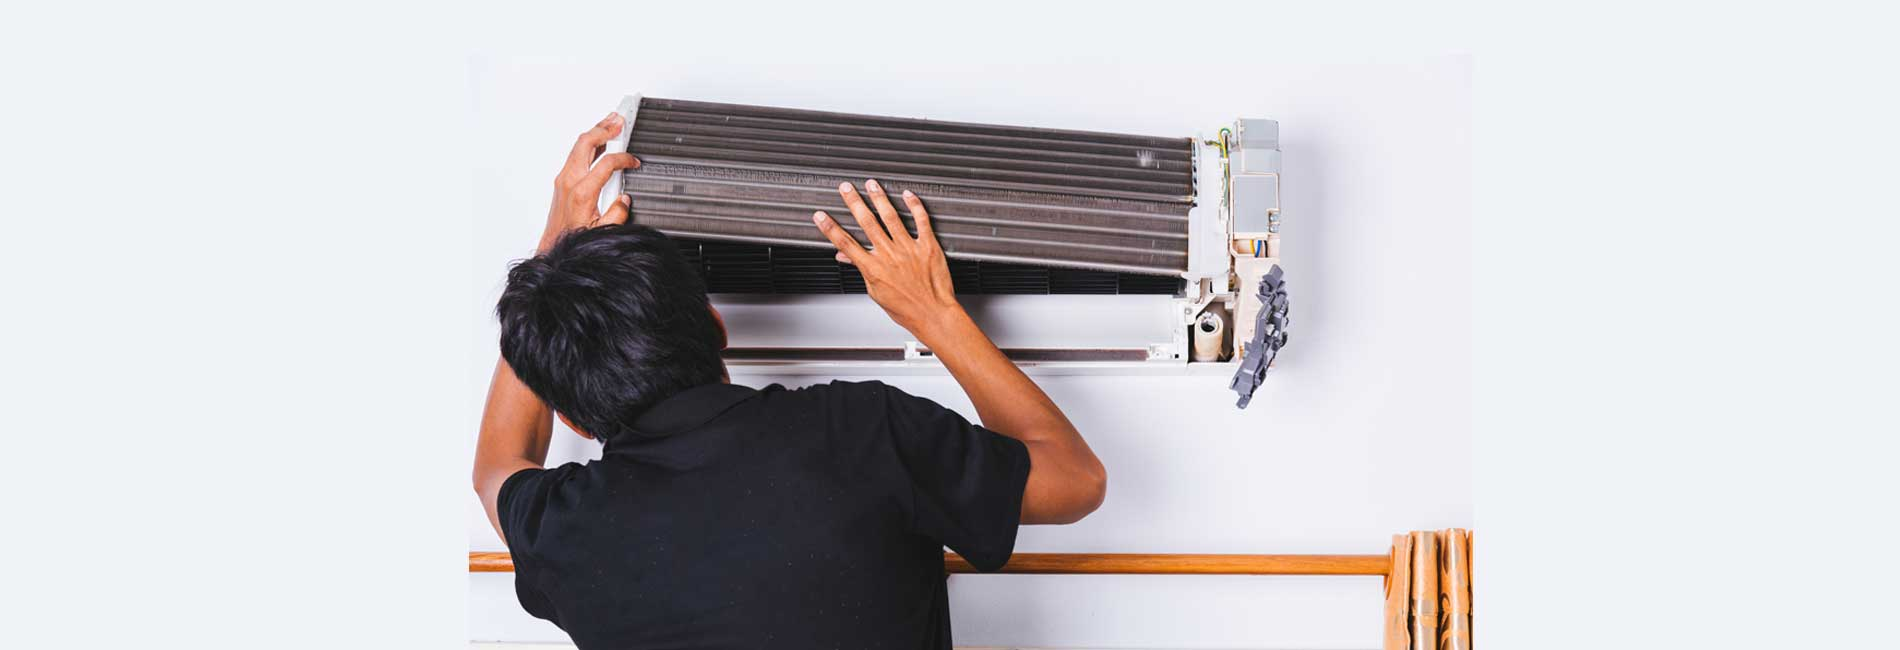 Whirlpool AC Service in Mathur